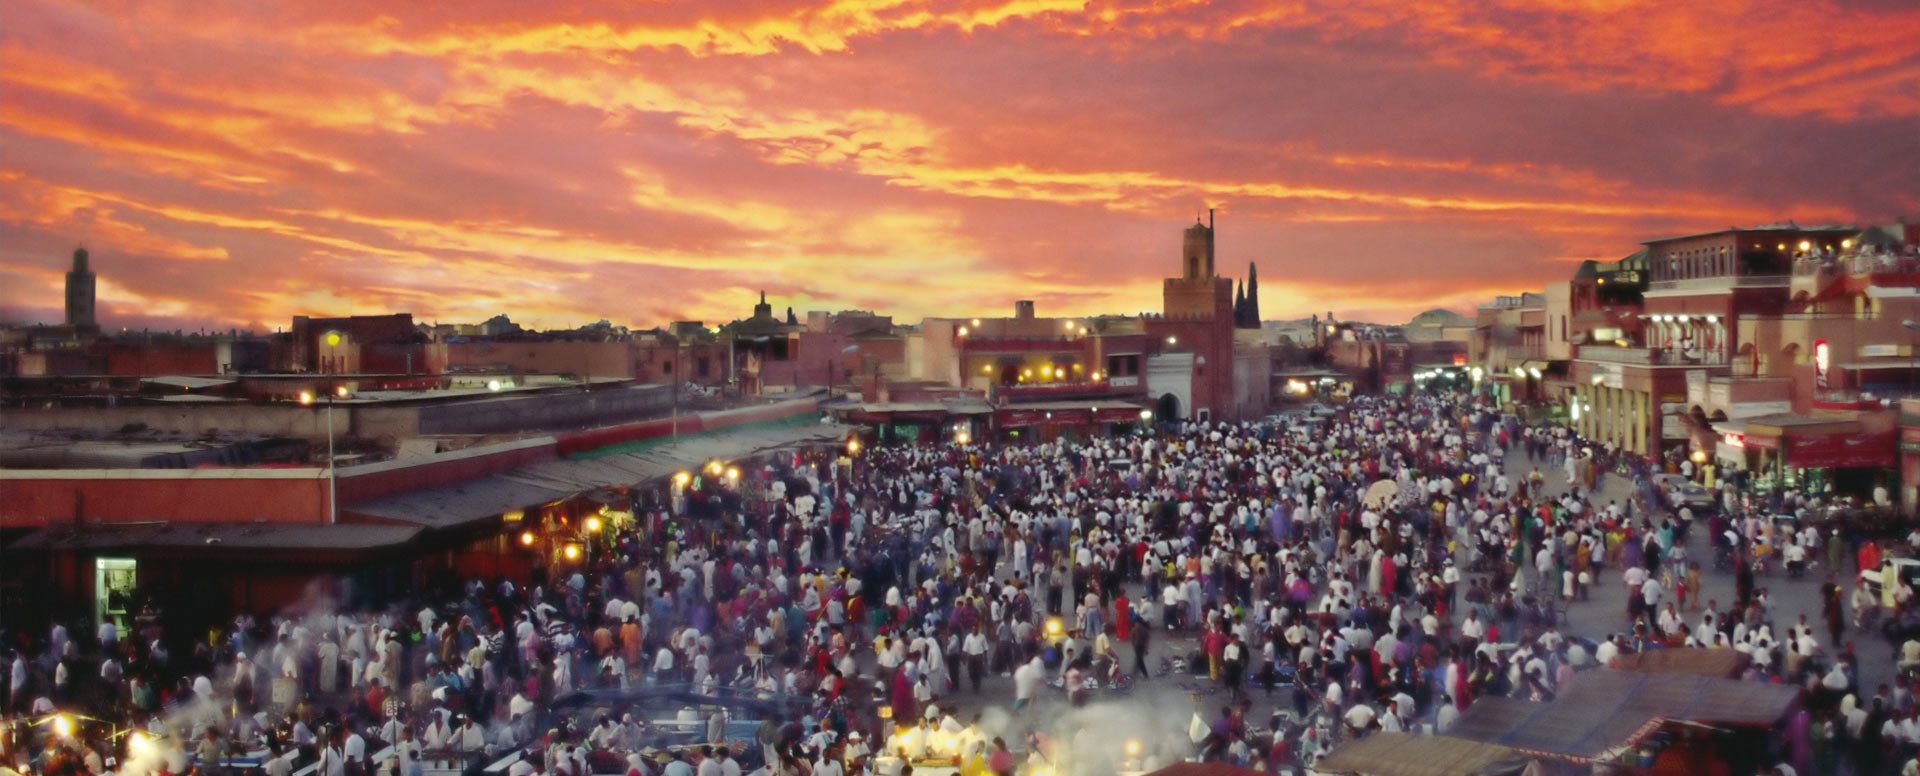 2. Discover Jemaa el Fna square in the evening - Marrakech